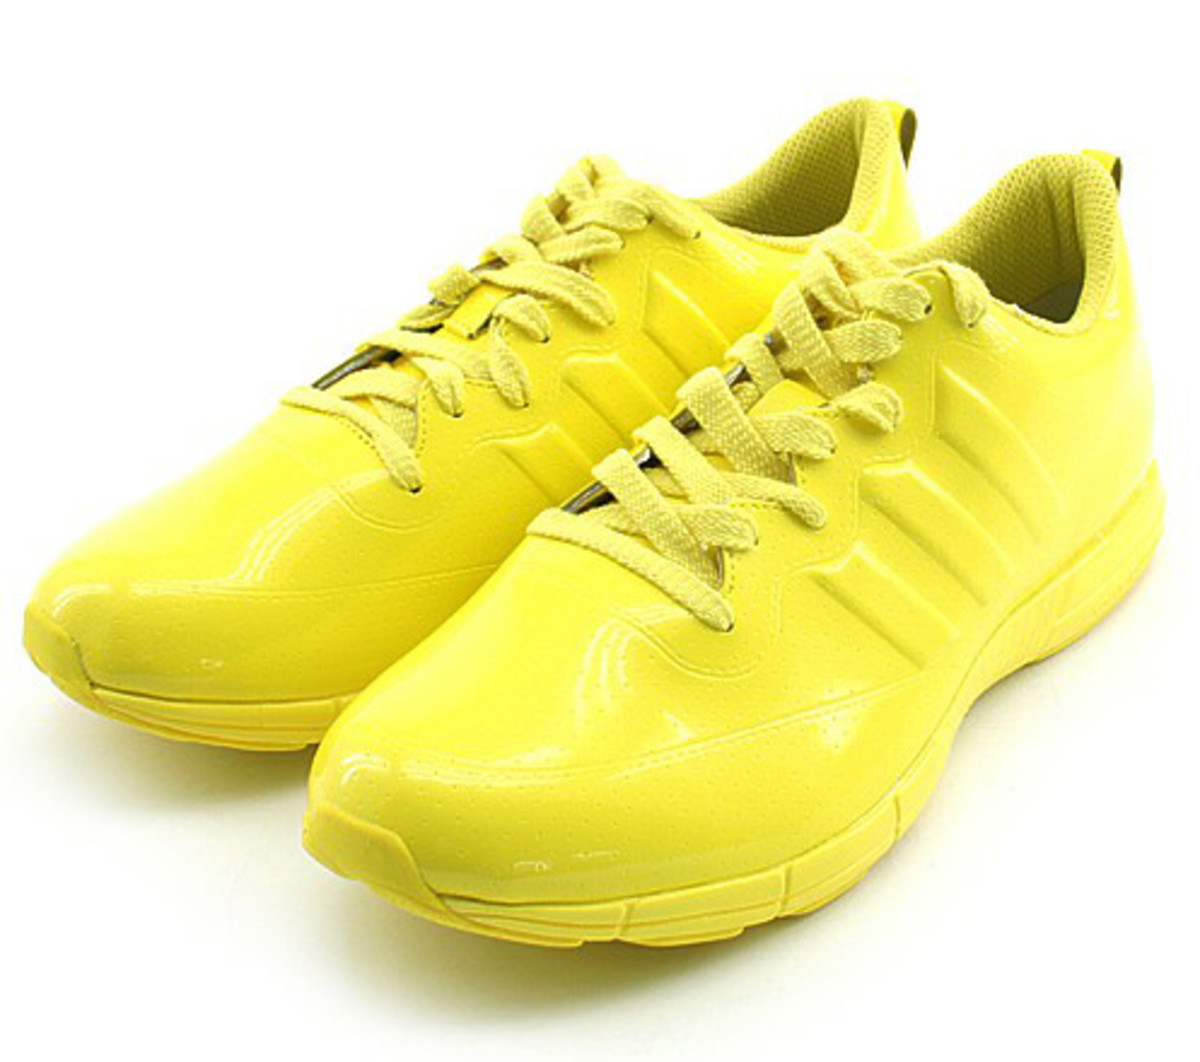 adidas-y-3-spring-summer-2010-honja-low-11